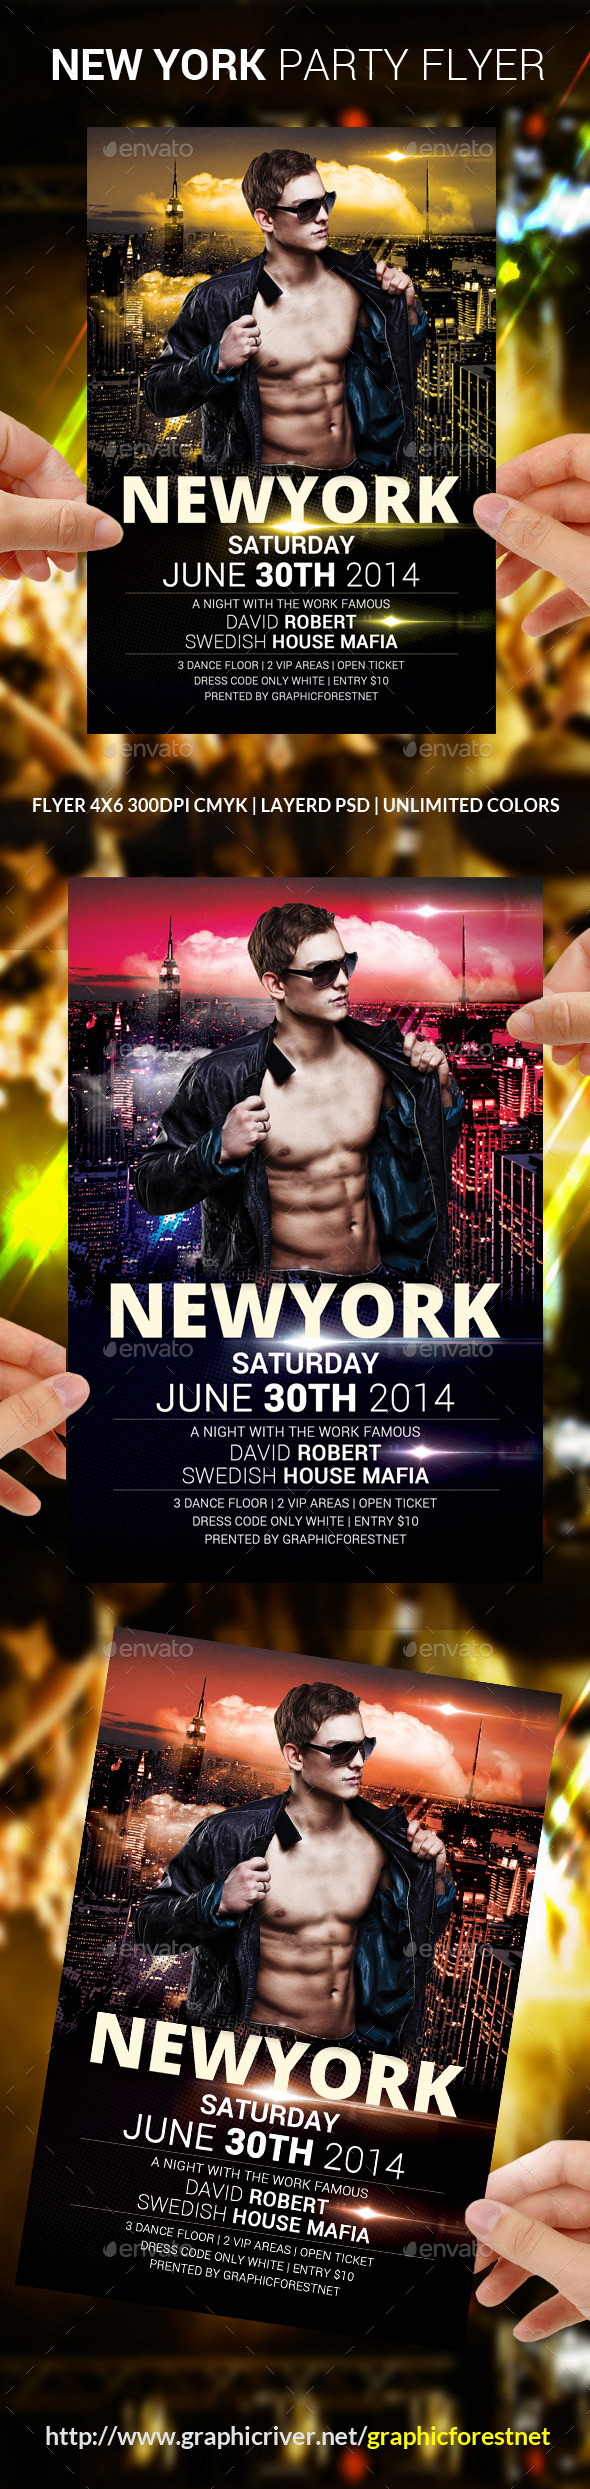 GraphicRiver New York Party Flyer Template 8793737